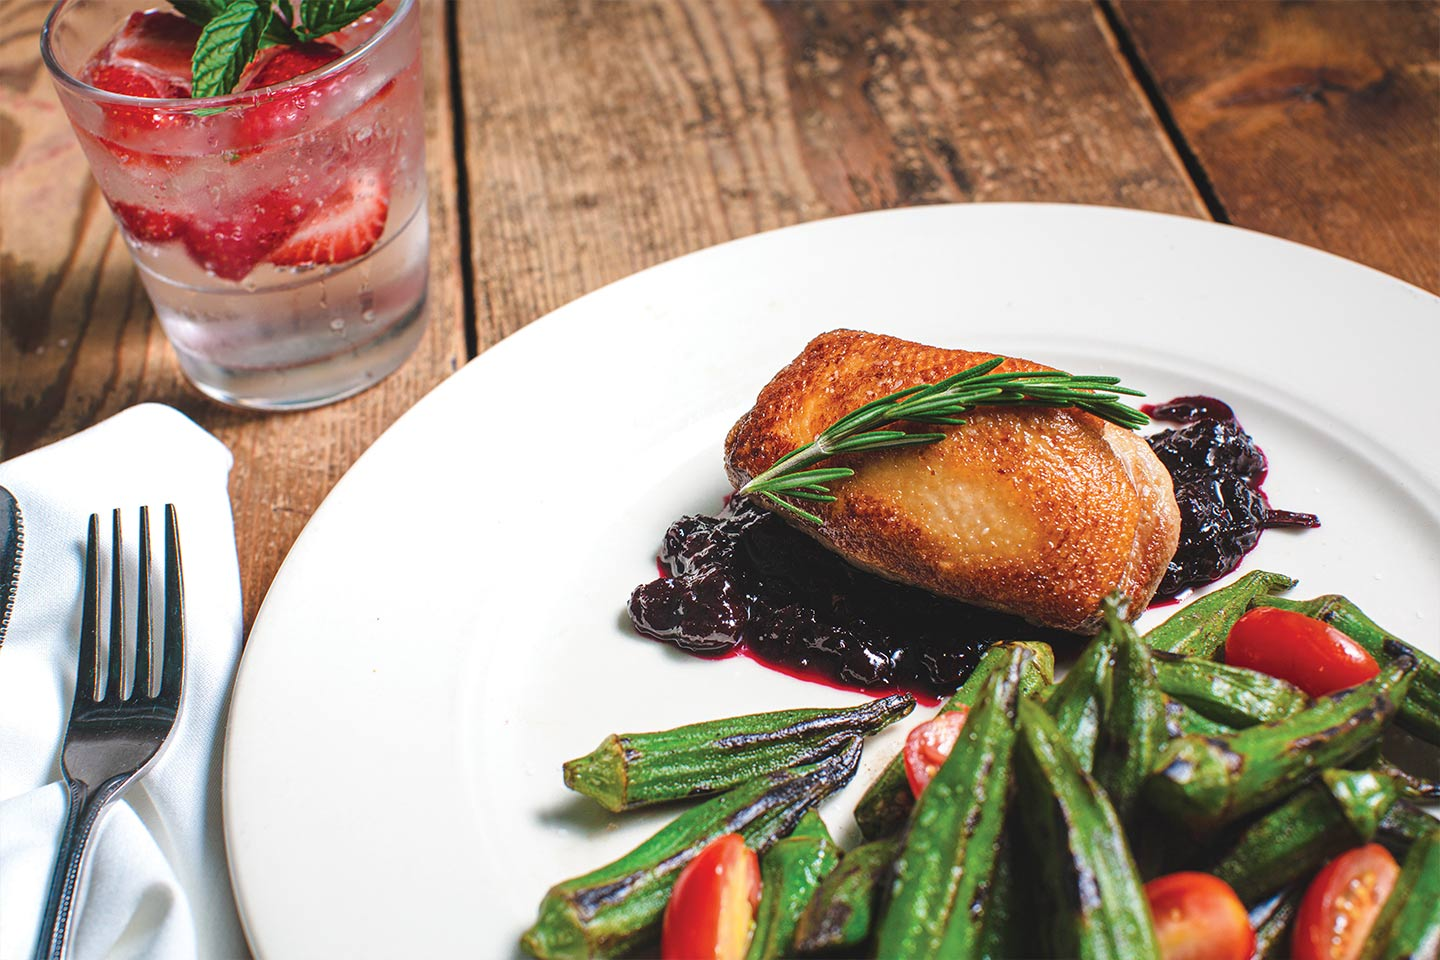 Cherry compote sauce from canyon grill served with duck